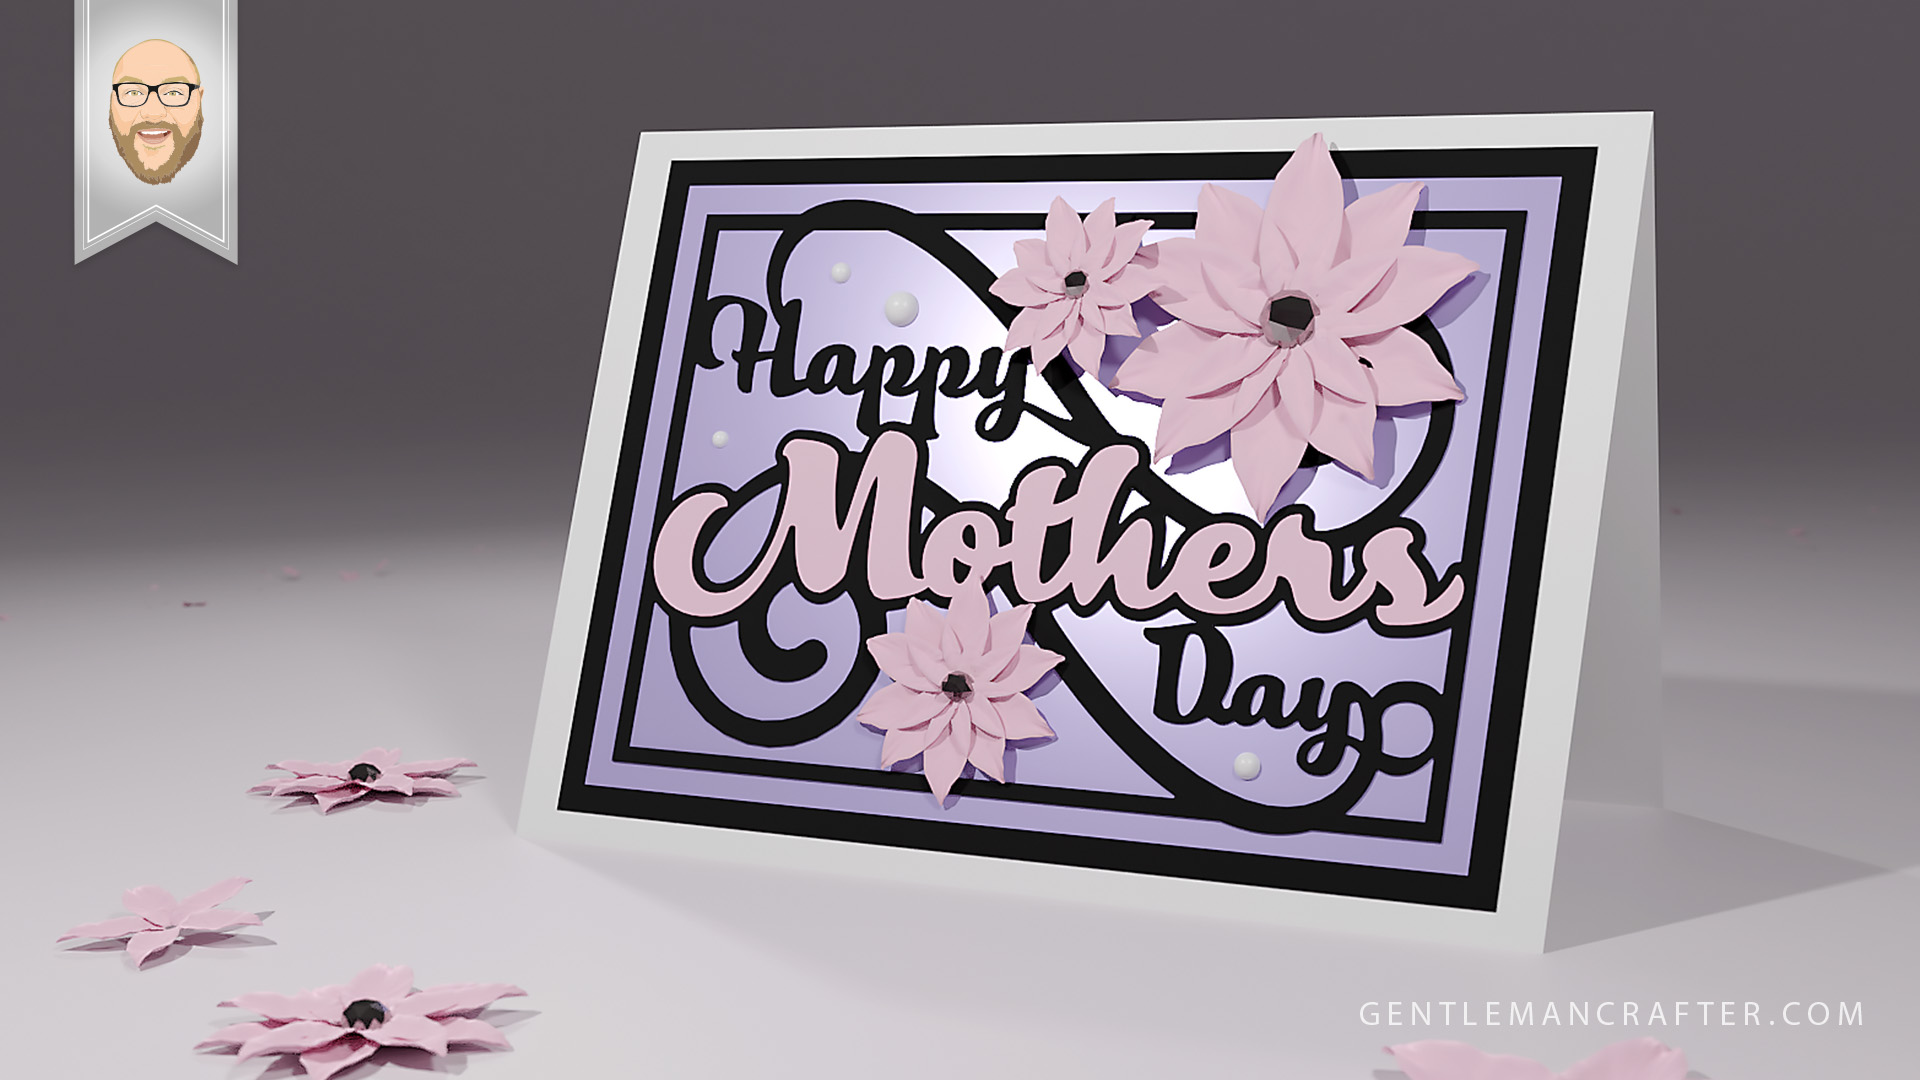 Free It comes with a complete commercial license! Free Svg Cutting File Mothers Day Card Gentleman Crafter SVG, PNG, EPS, DXF File